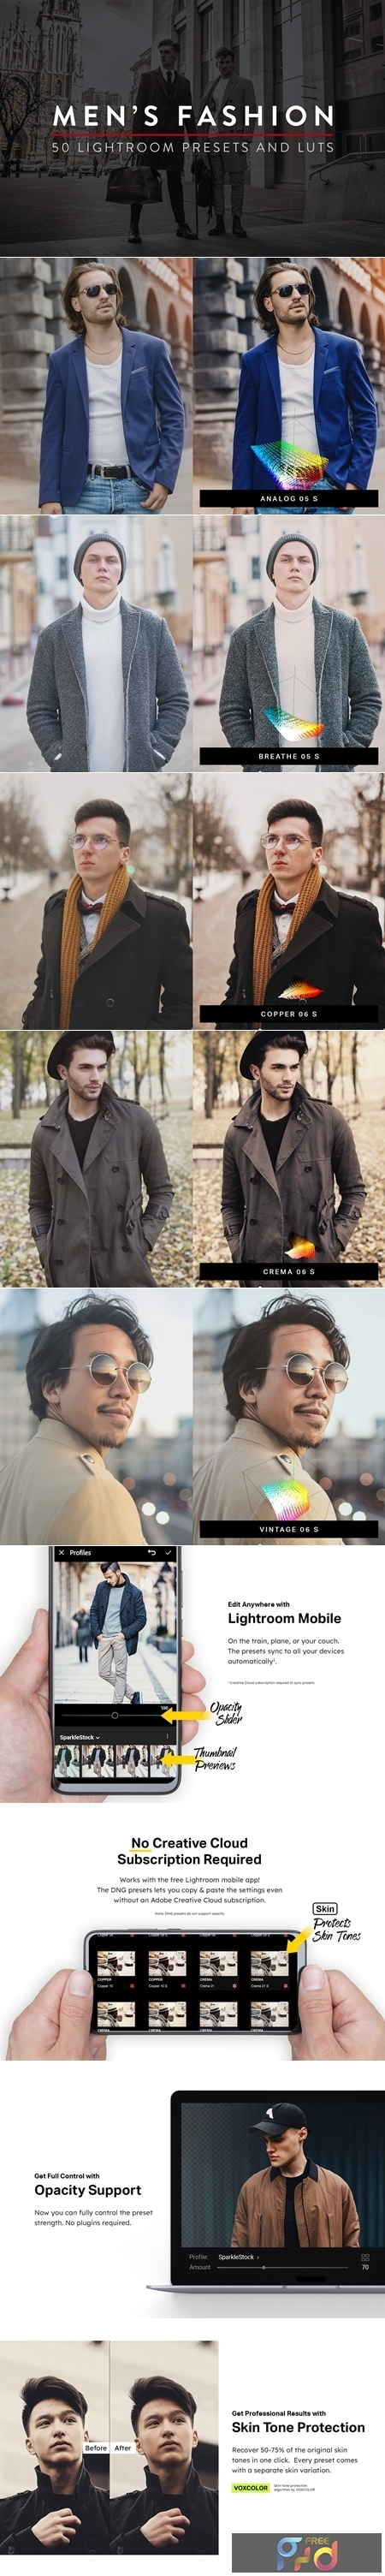 50 Mens Fashion Lightroom Presets and LUTs 4546717 1